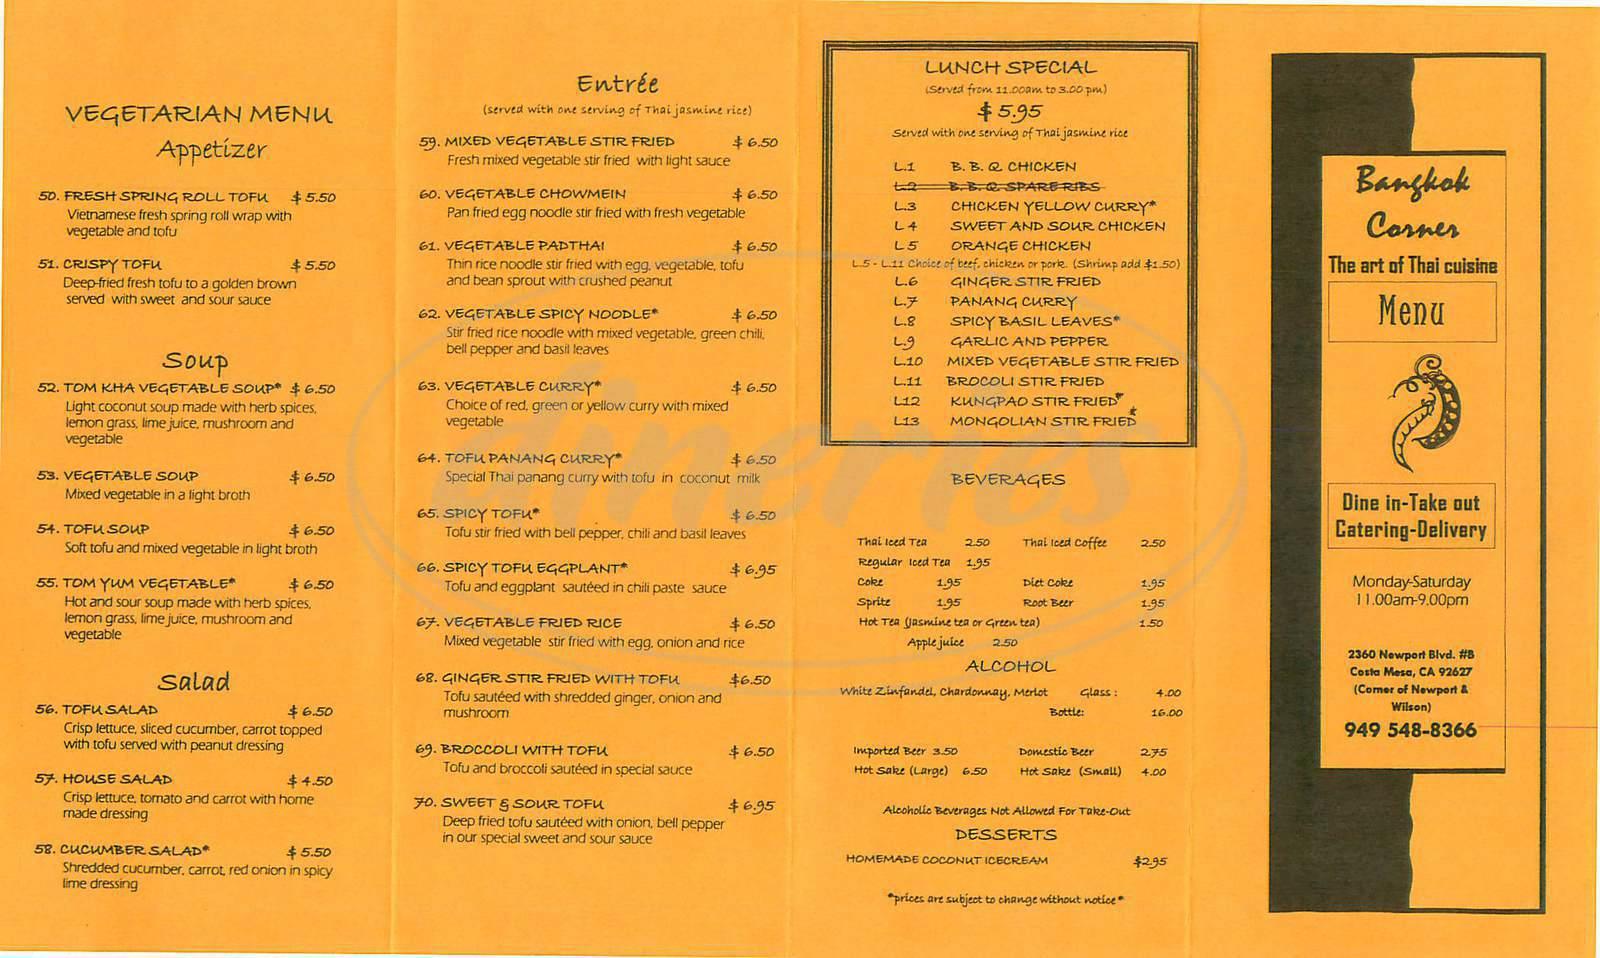 menu for Bangkok Corner